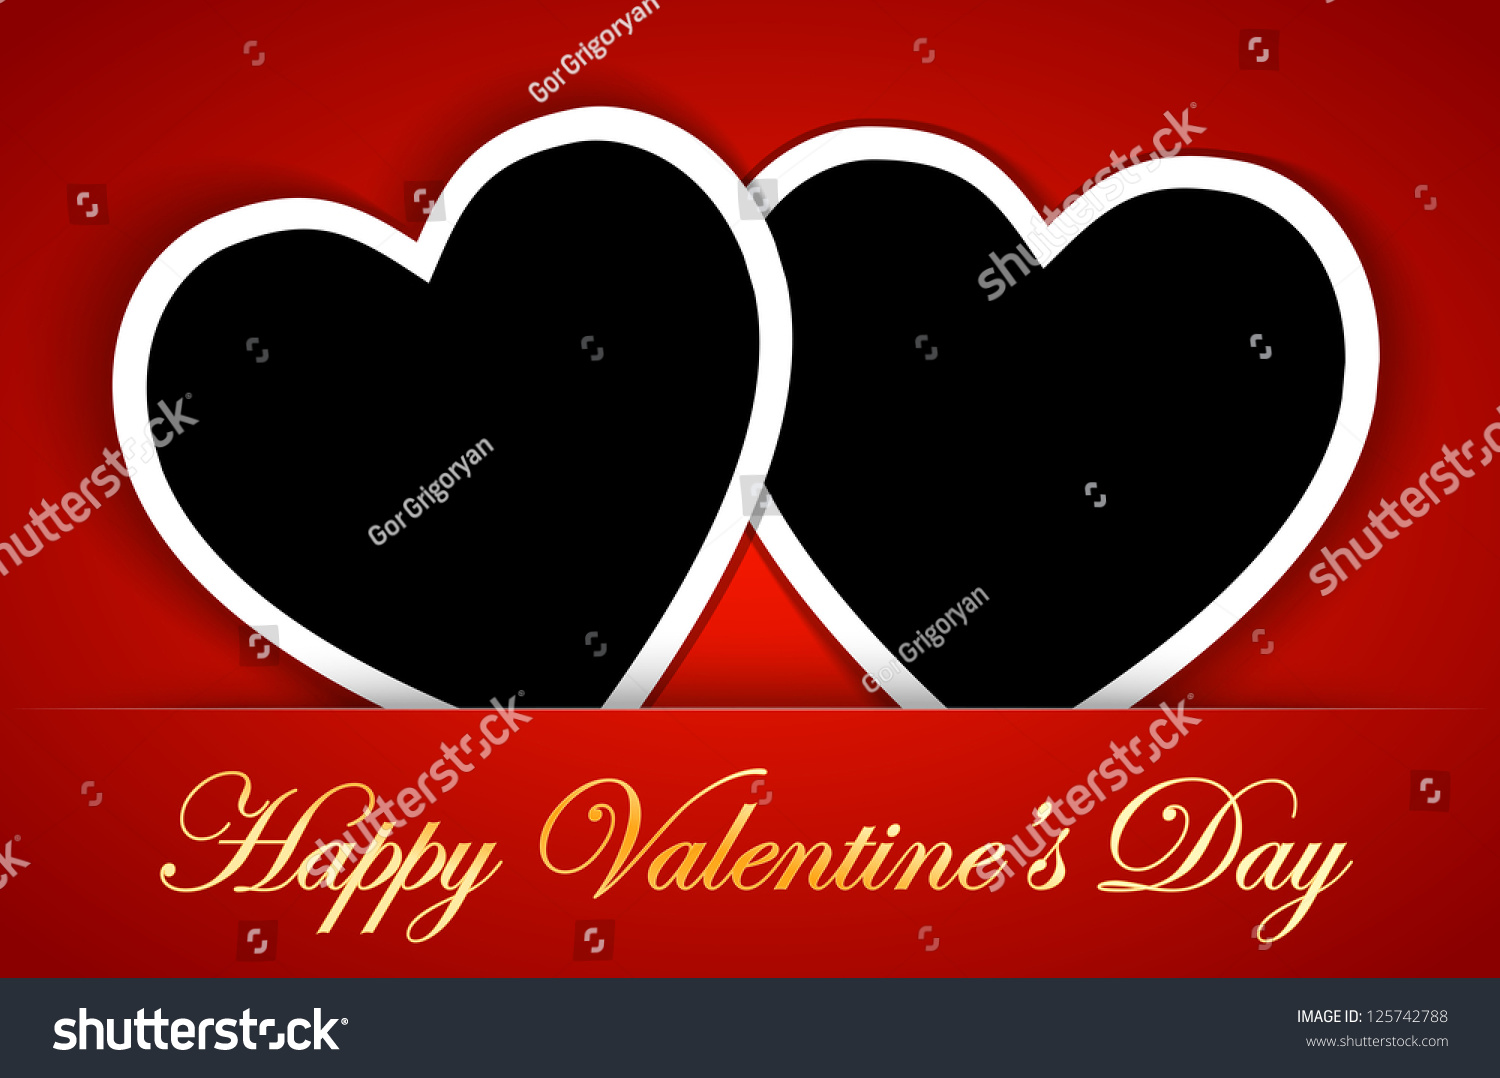 Valentines Card Template Heart Shape Blank Illustration – Valentines Card Template